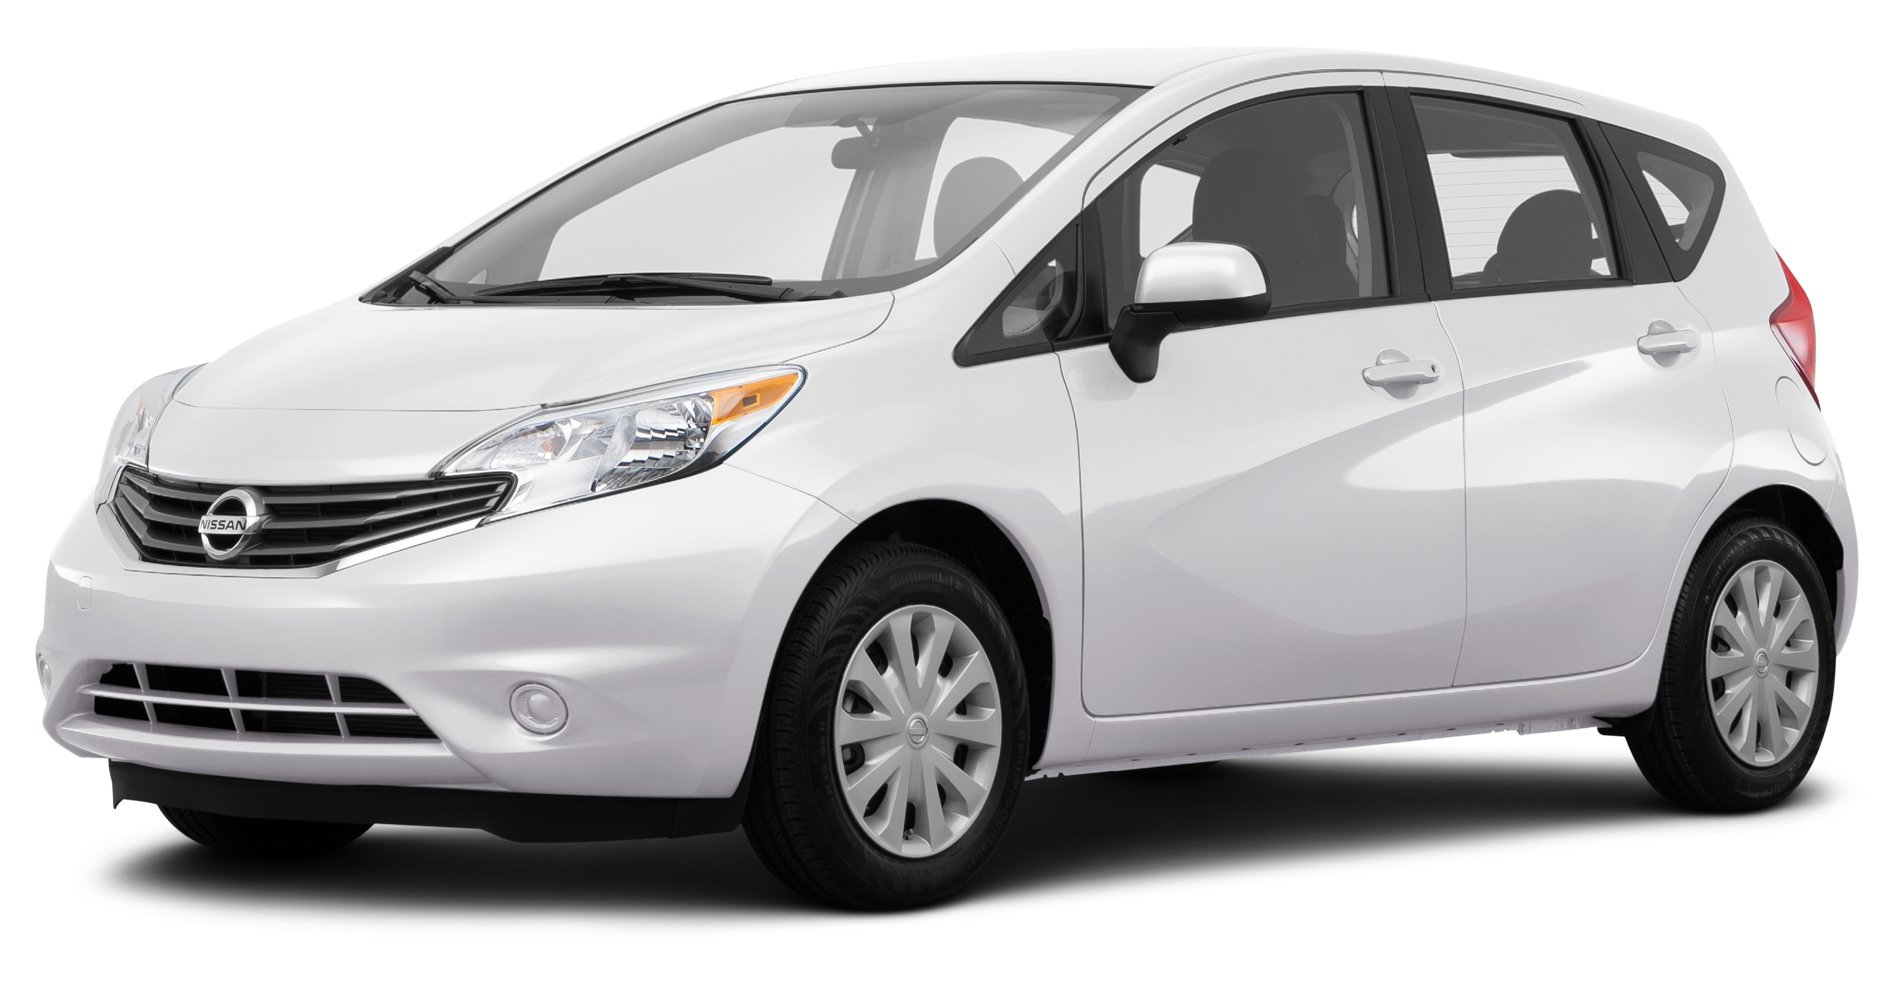 2014 nissan versa note reviews images and. Black Bedroom Furniture Sets. Home Design Ideas